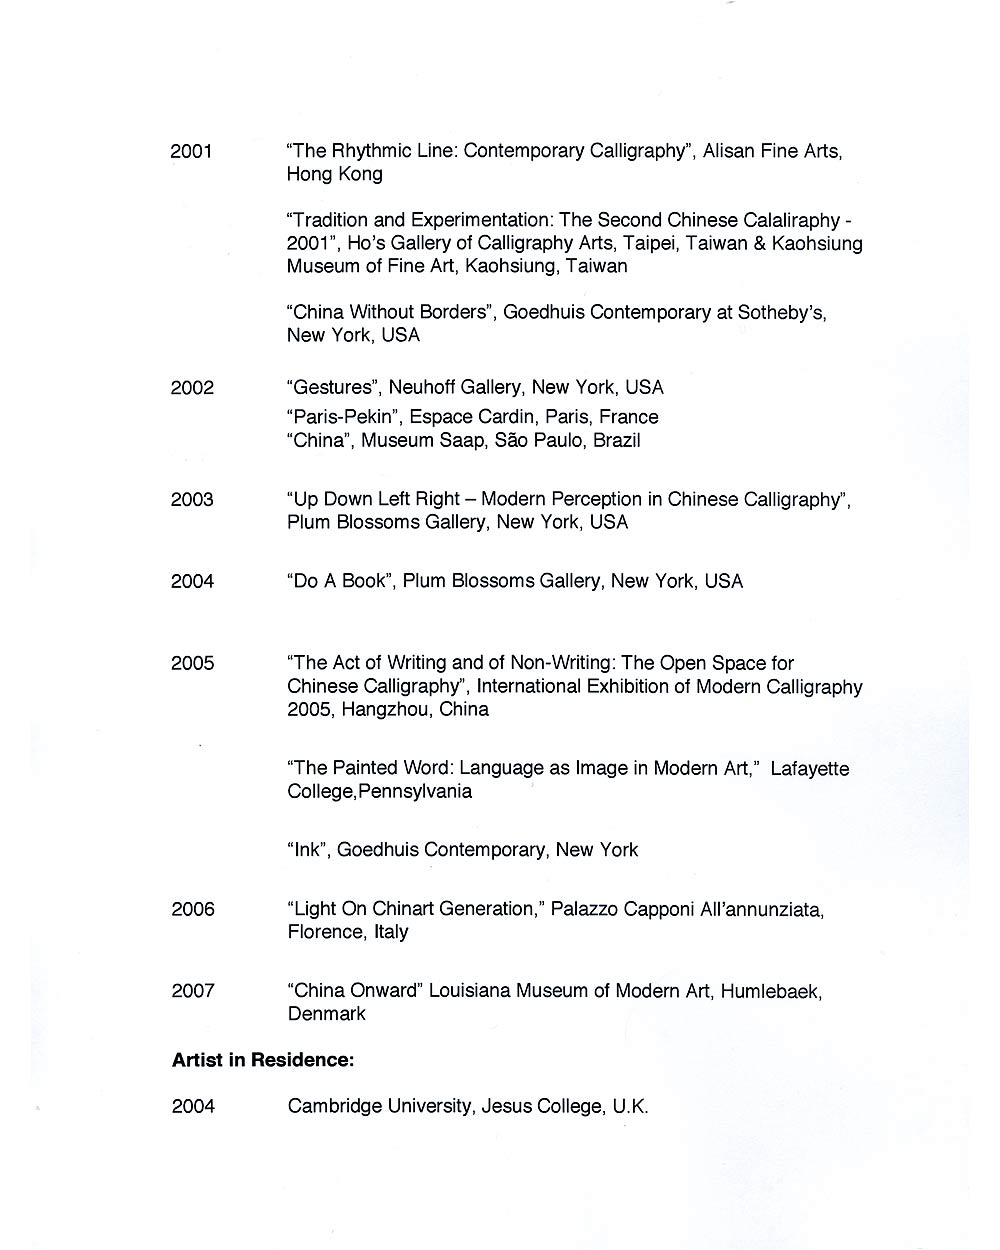 Ming Chip Fung's Resume, pg 4